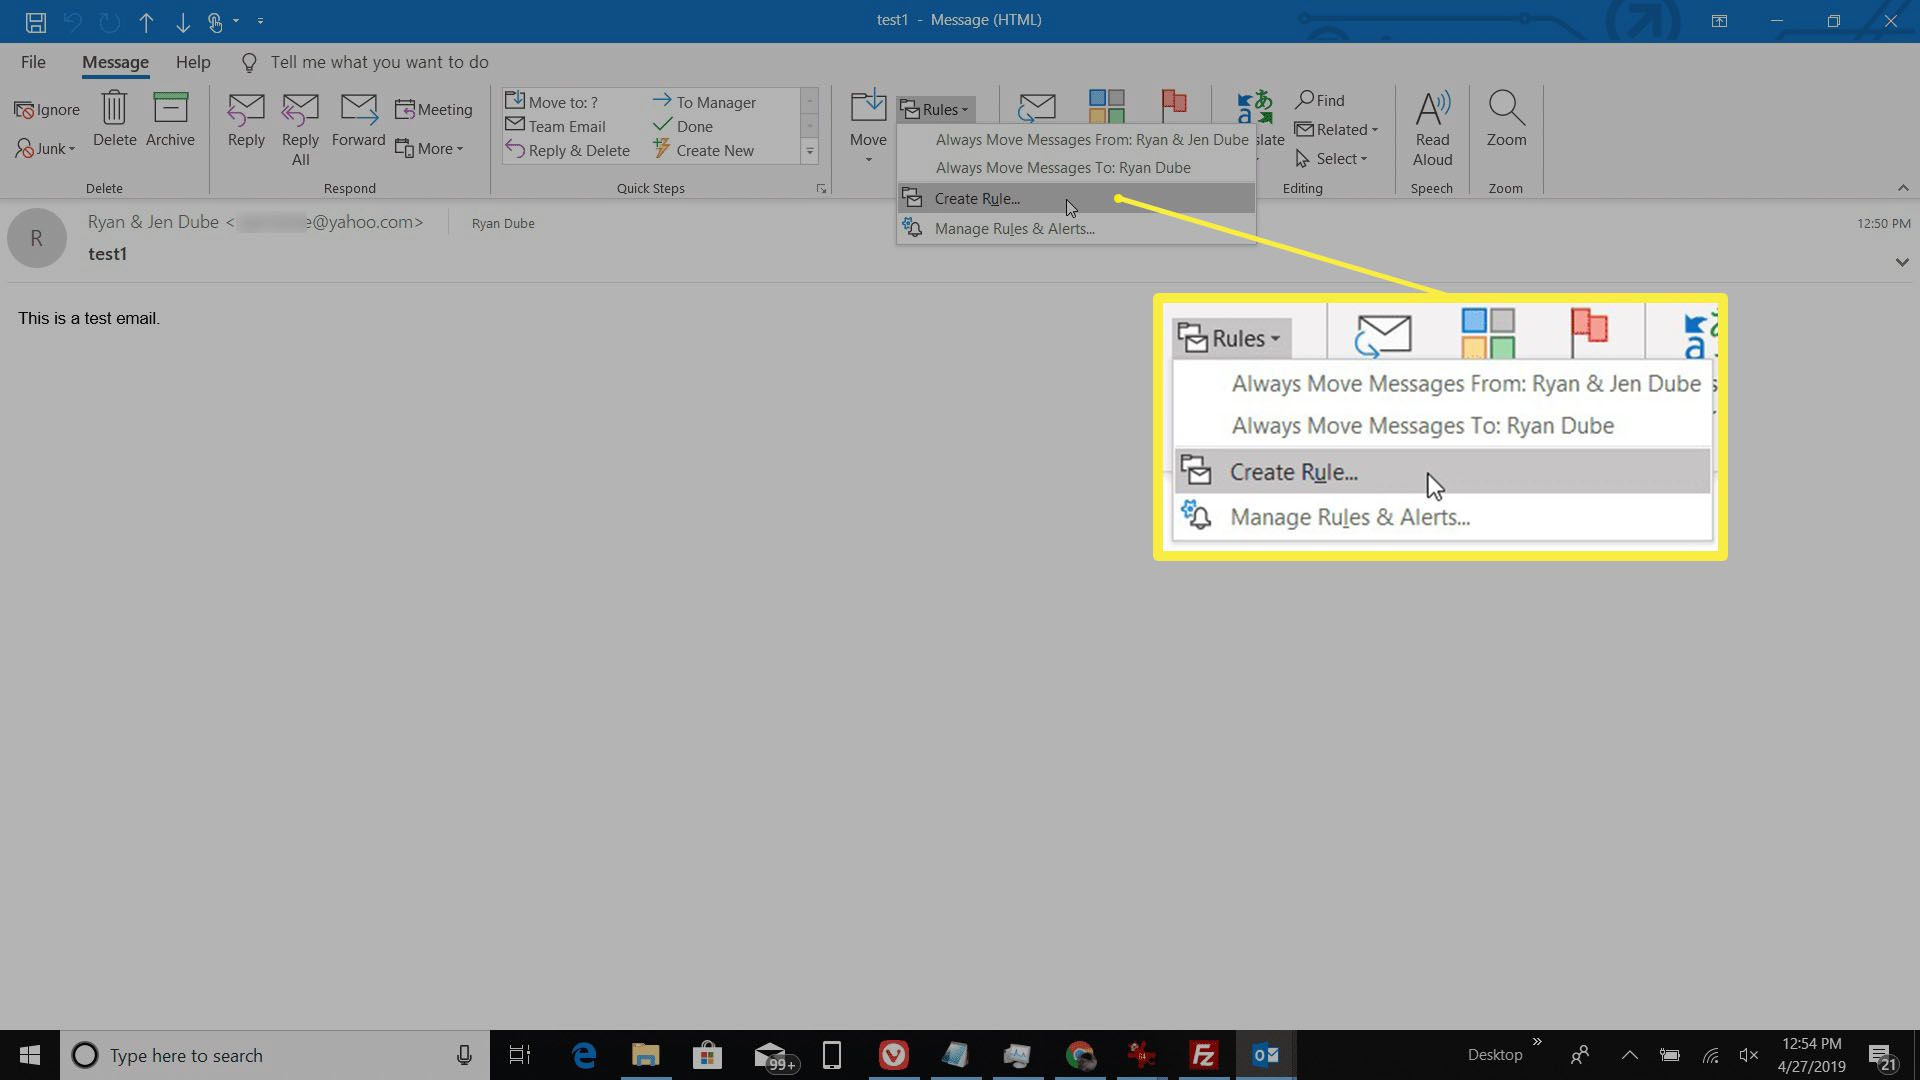 Screenshot of creating a rule in an email message in Outlook.